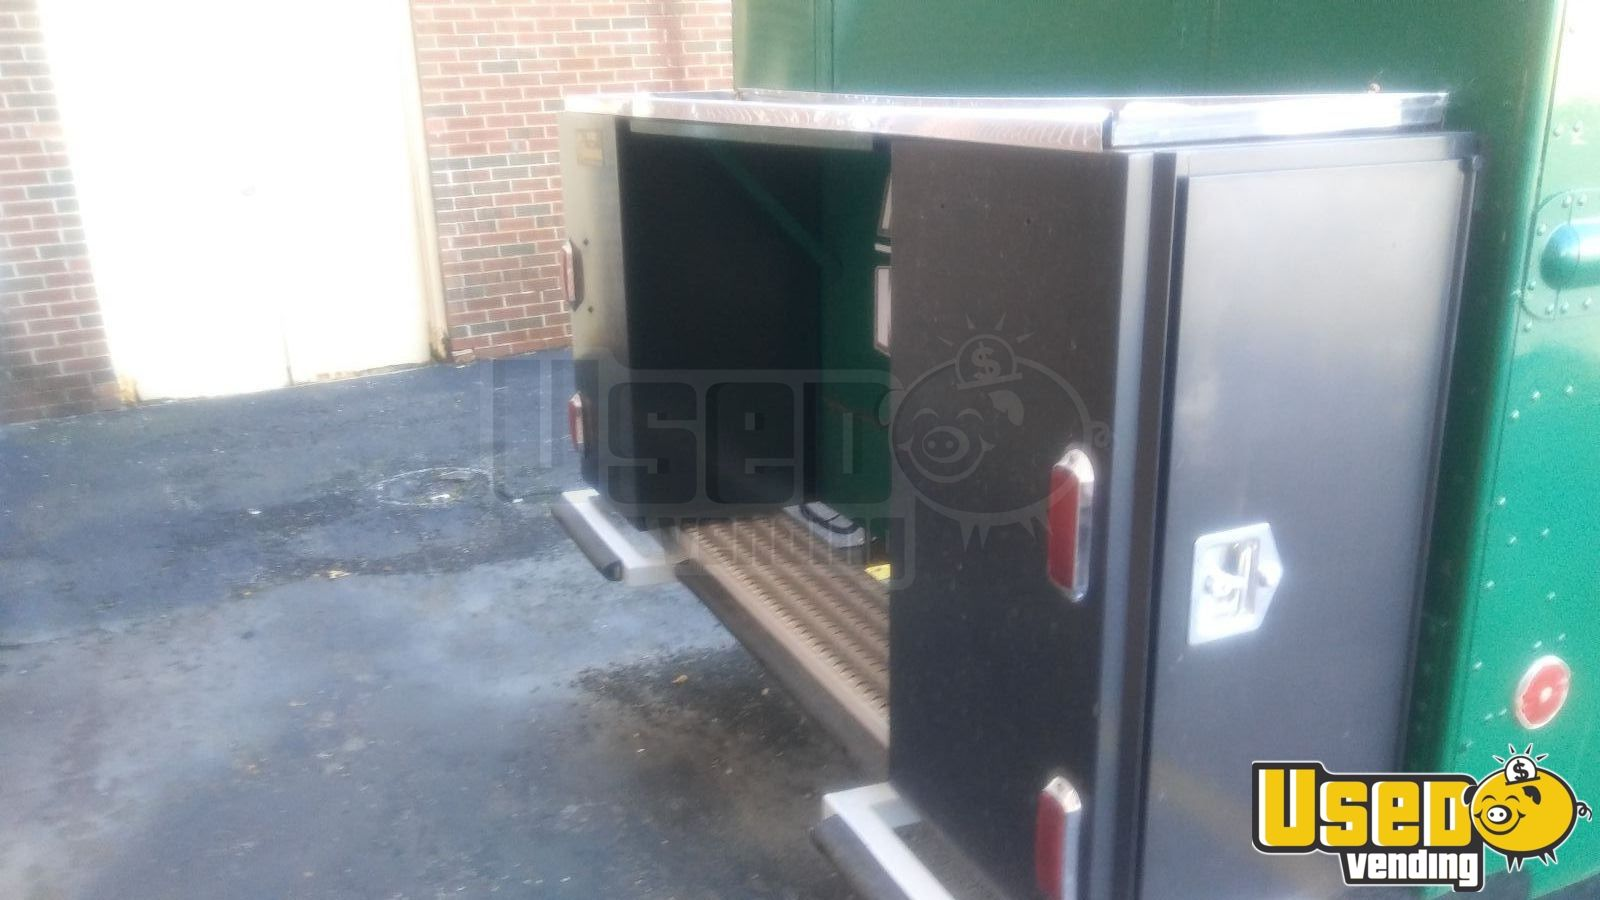 All-purpose Food Truck Insulated Walls Illinois Diesel Engine for Sale - 4